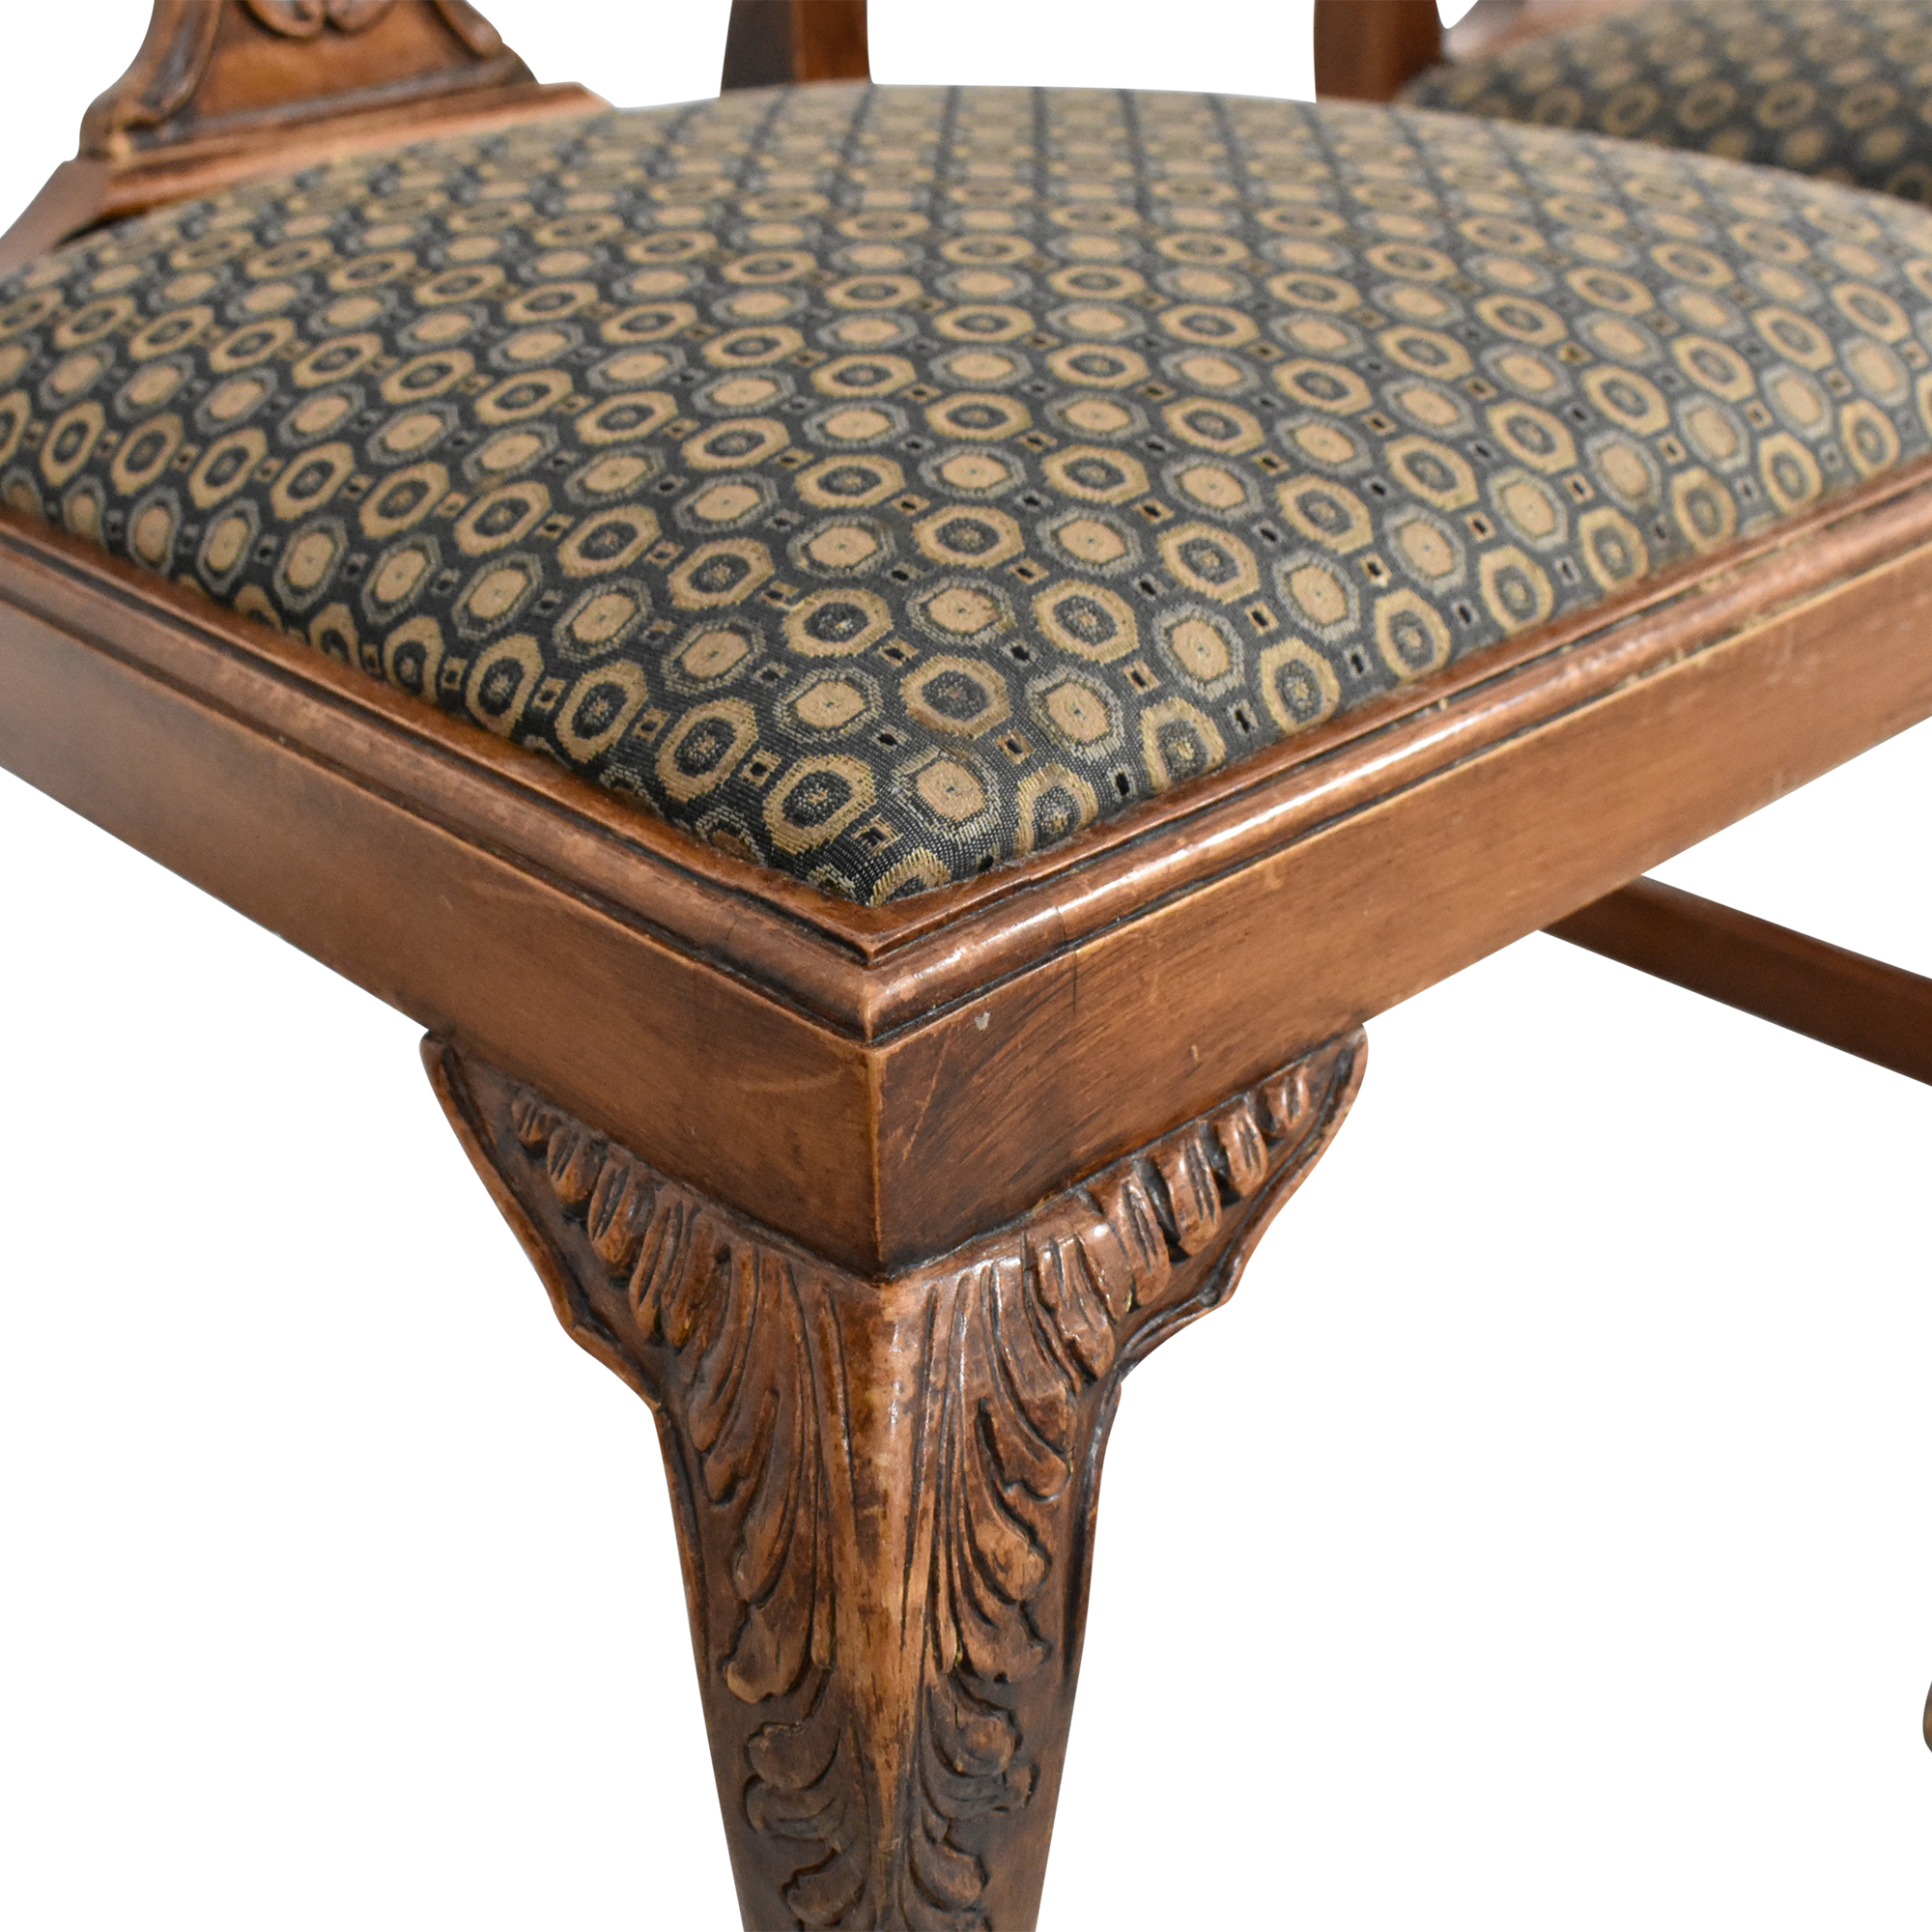 Carved Back Upholstered Dining Chairs / Chairs